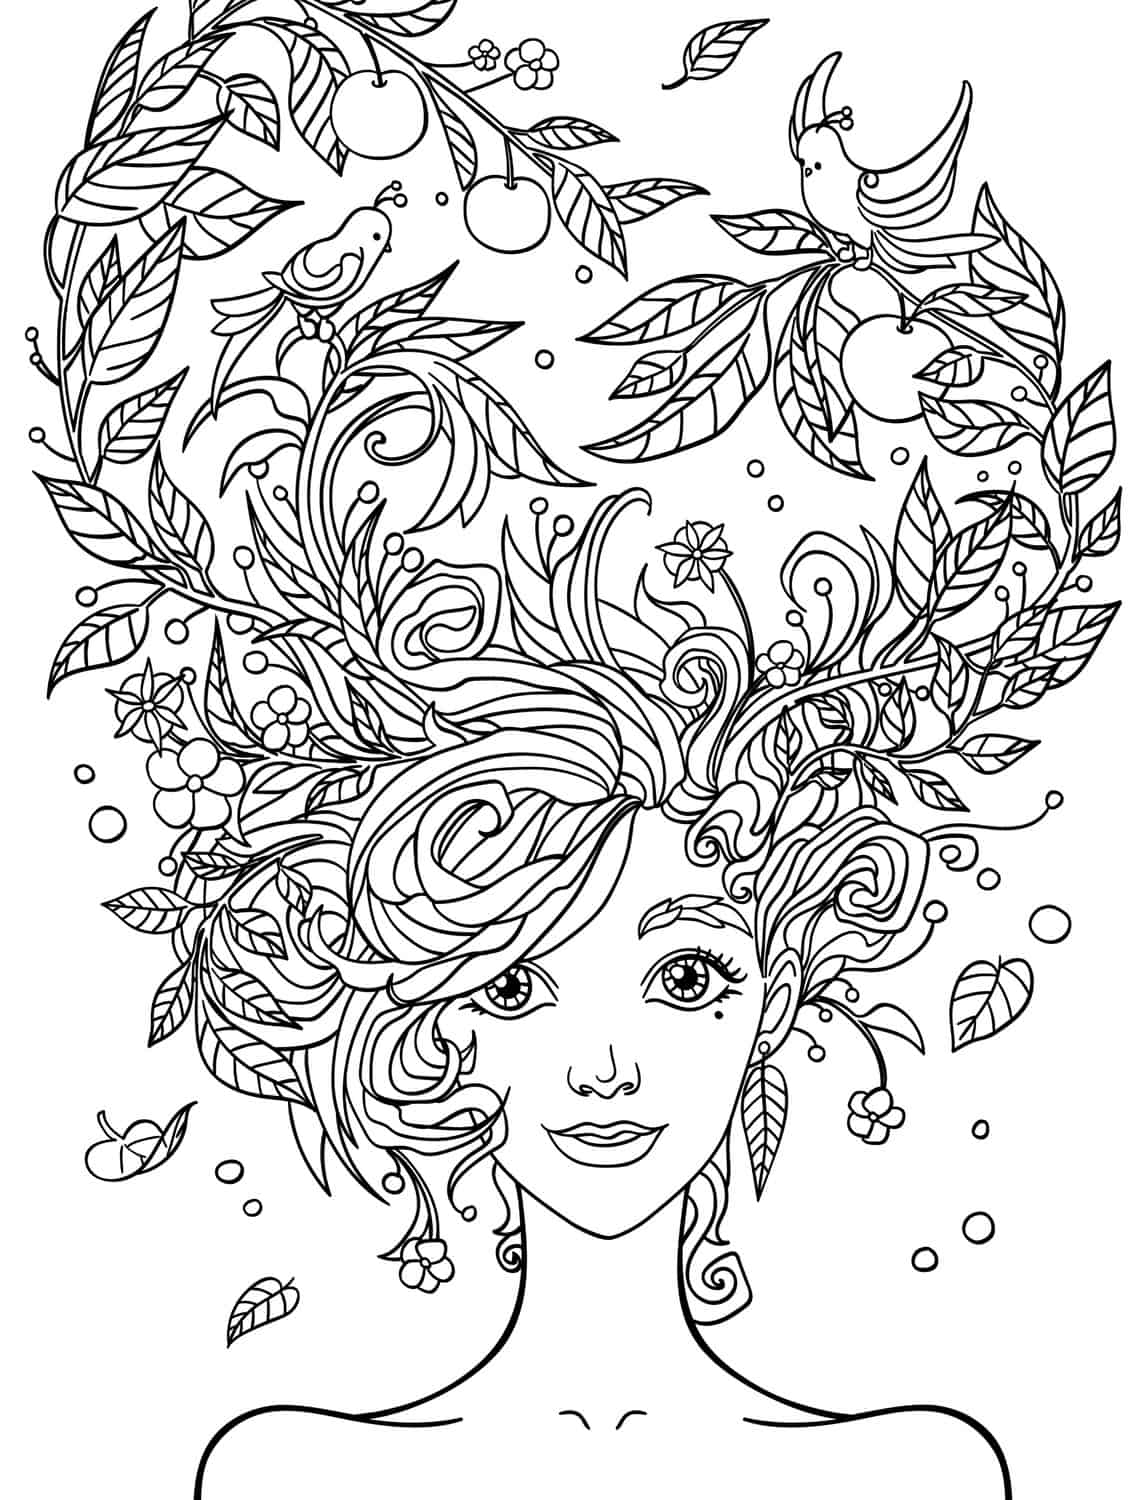 10 Crazy Hair Adult Coloring Pages Page 5 Of 12 Nerdy Free Printable Coloring Book Pages For Adults